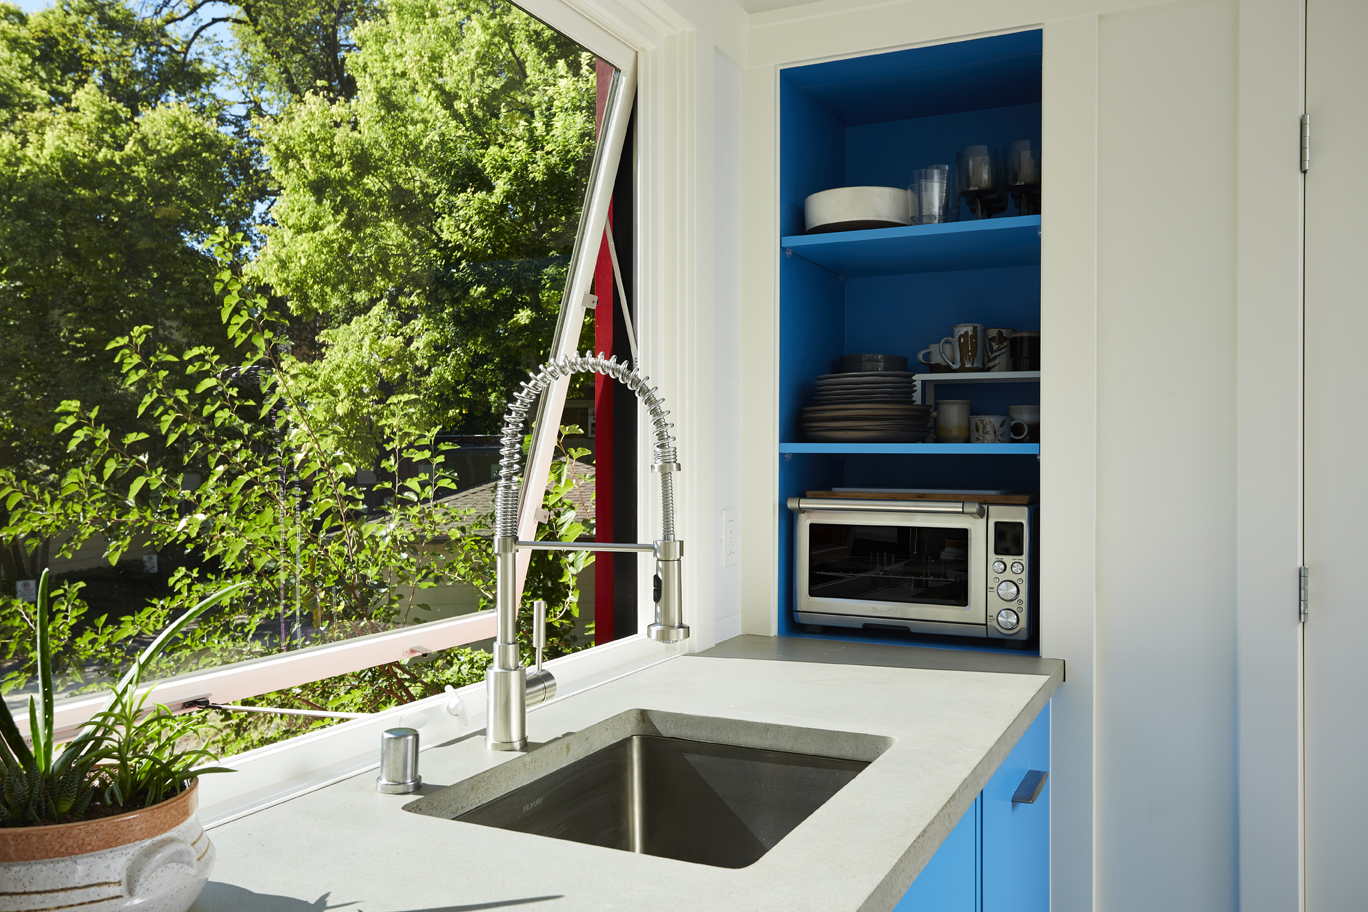 The kitchenette in Eric Tollefson's 400-square-foot accessory dwelling